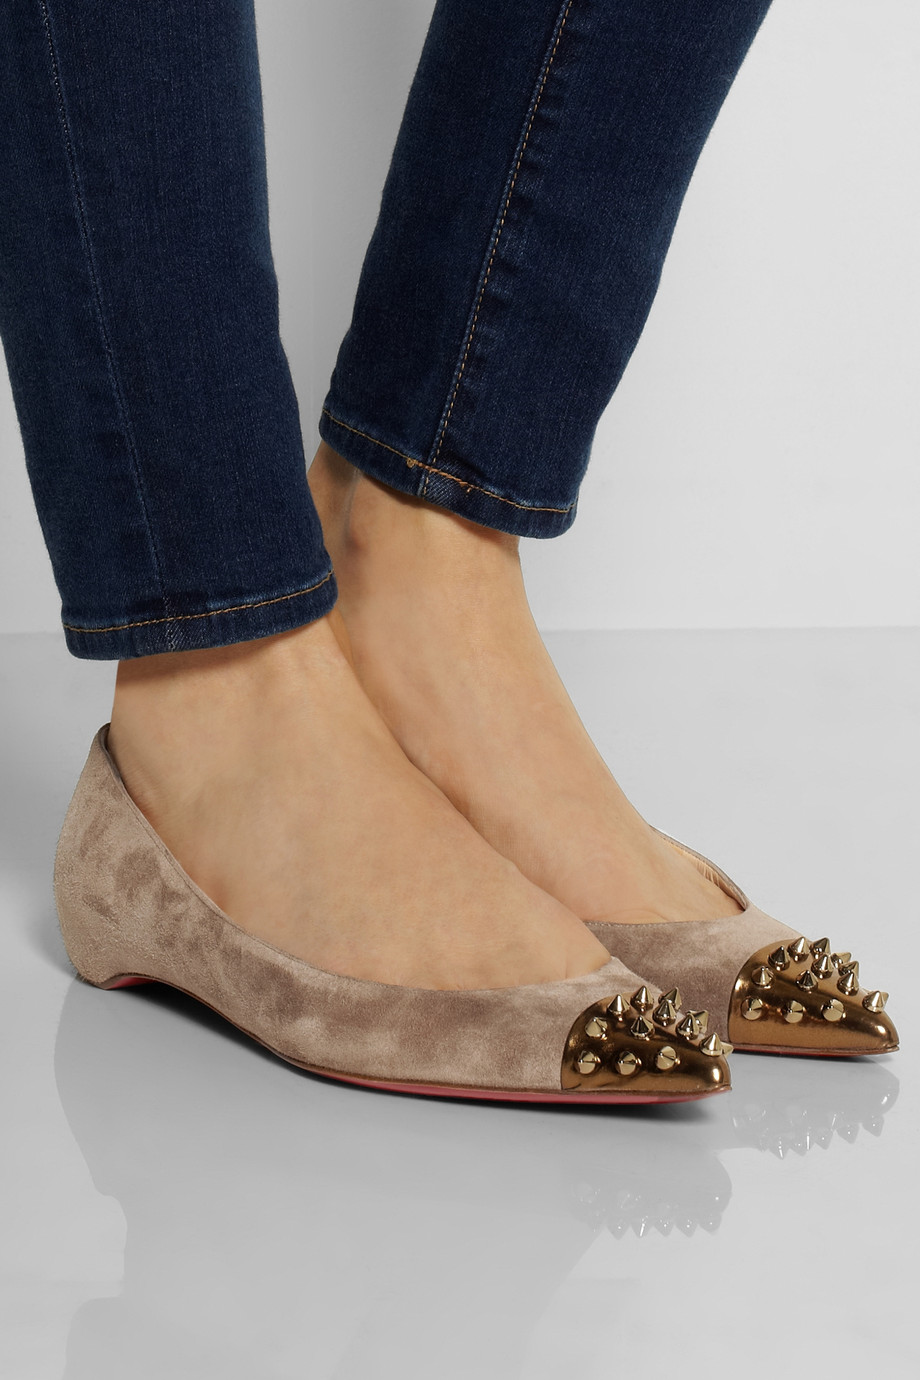 Christian Louboutin Geo Spiked Suede And Leather Ballet